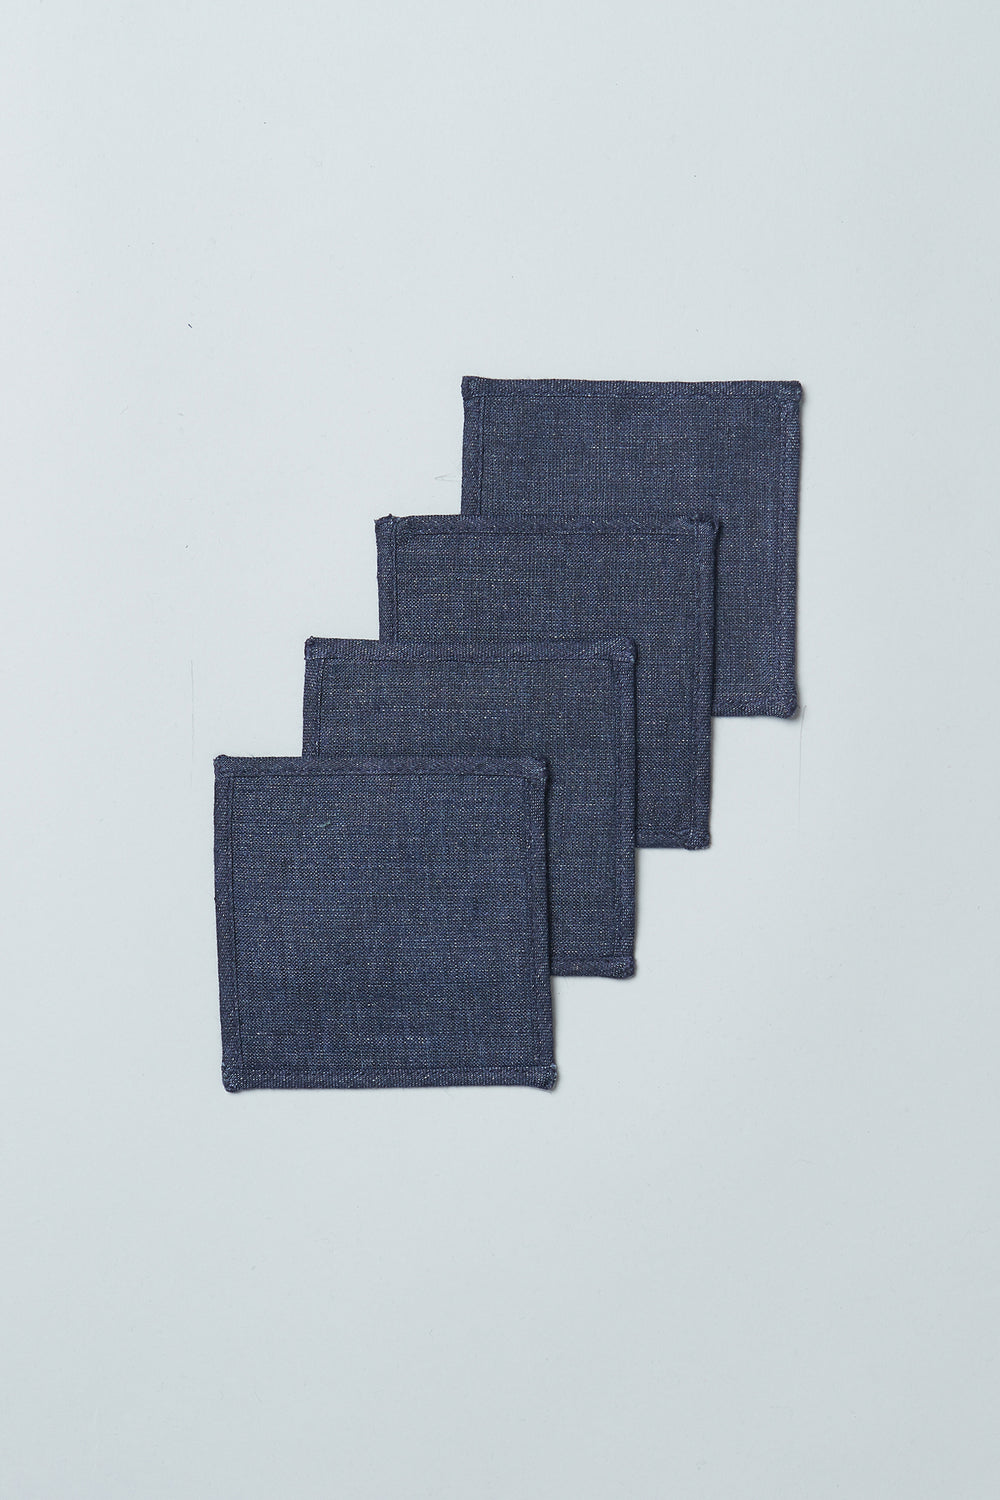 Linen Upcycled Coasters (Set of 4)